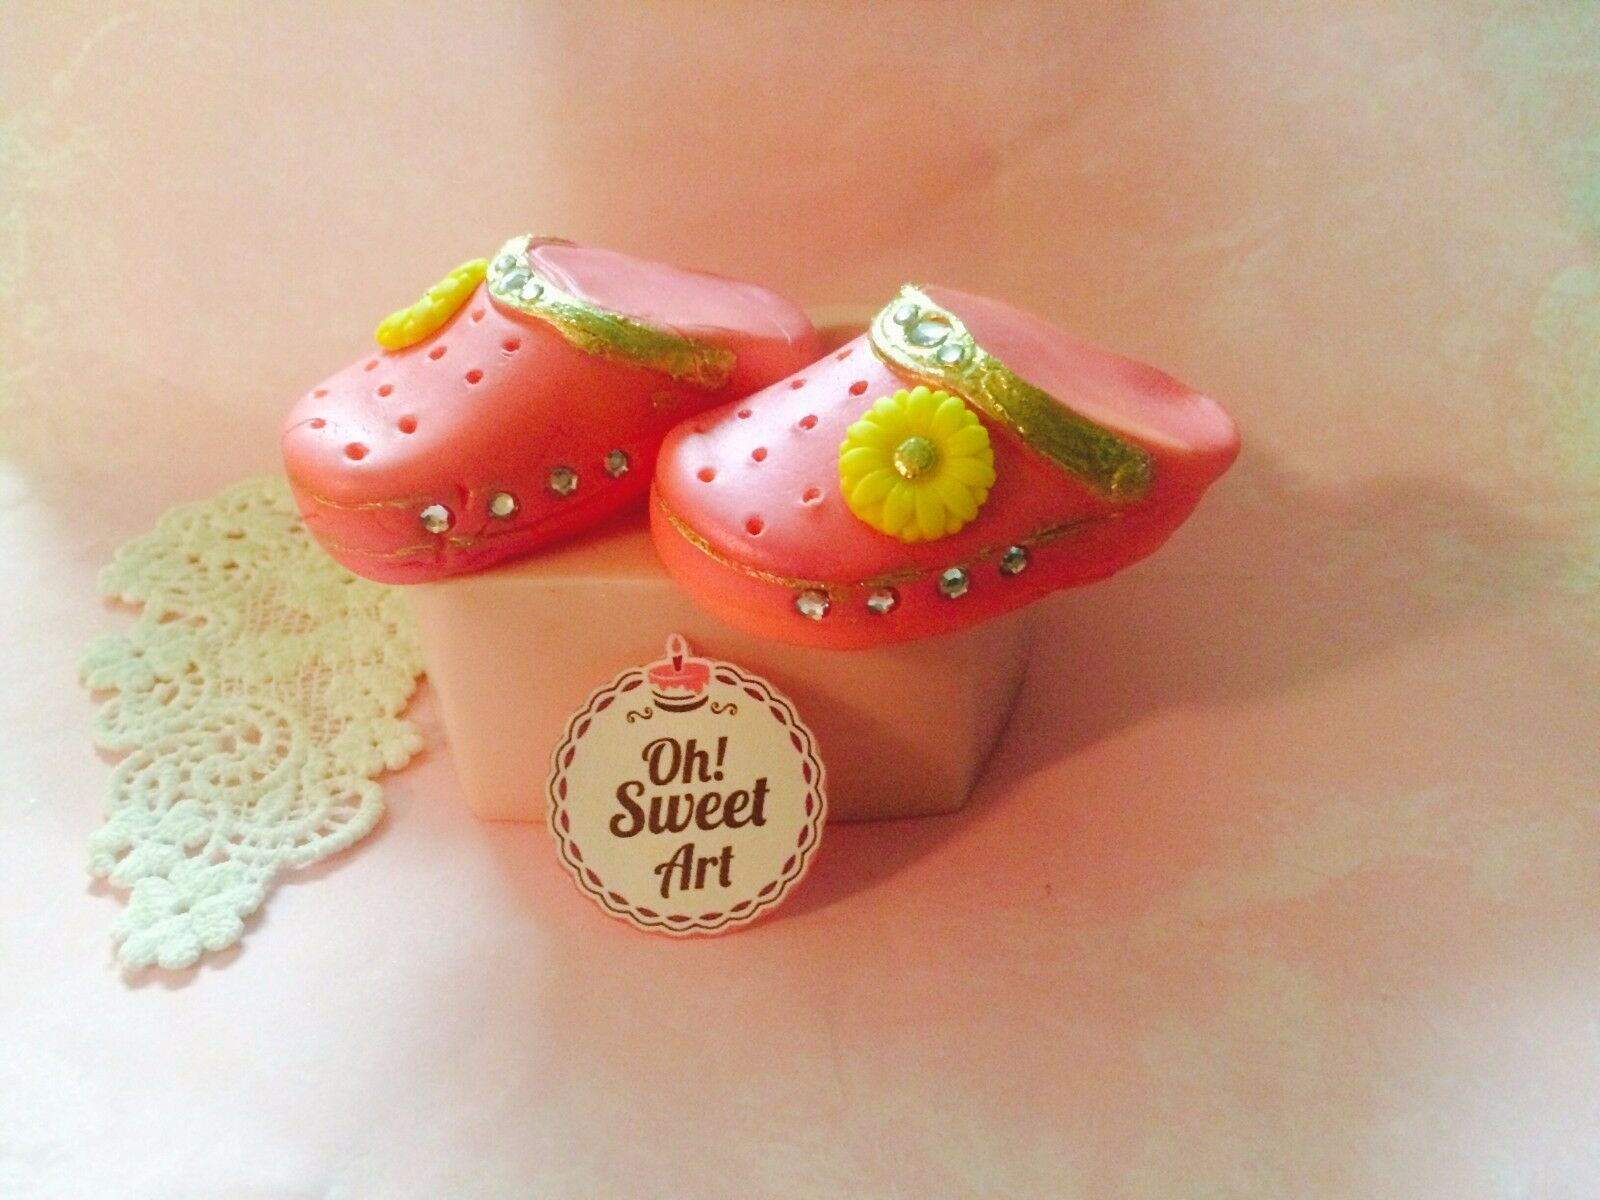 Baby shoes CROCS 3D silicone mold fondant cake soap decorating APPROVED FOR FOOD